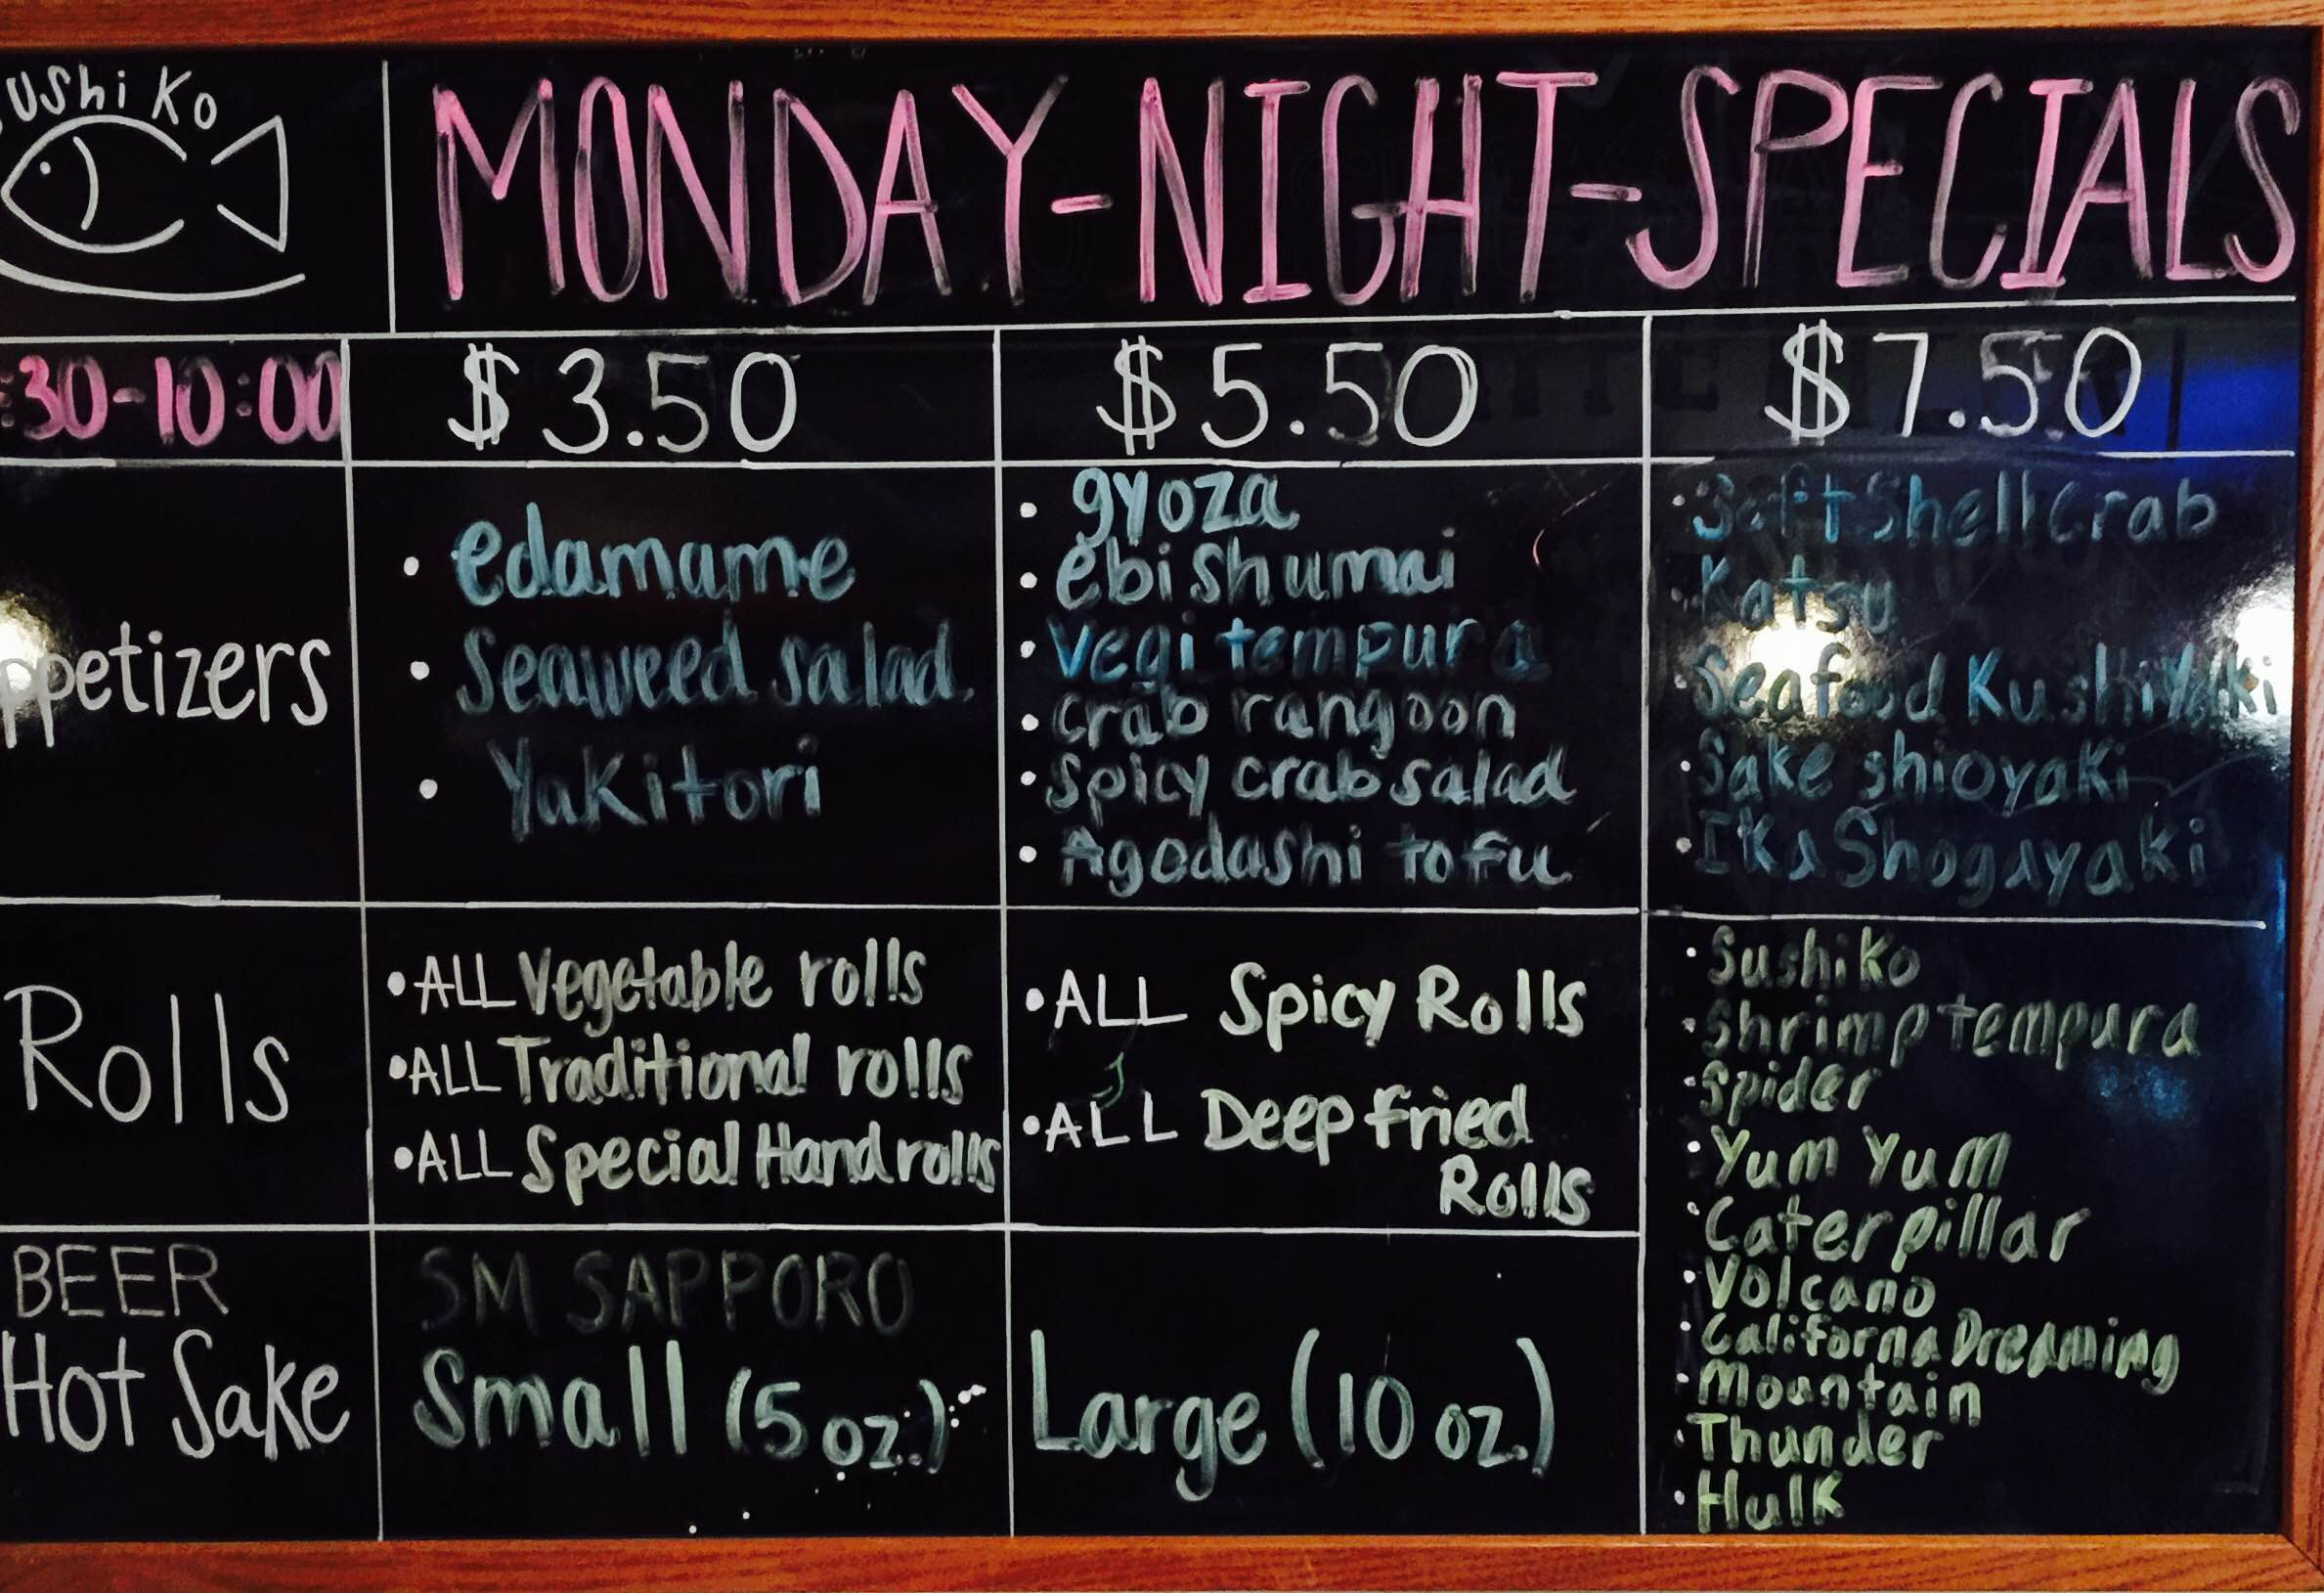 Monday Night Specials